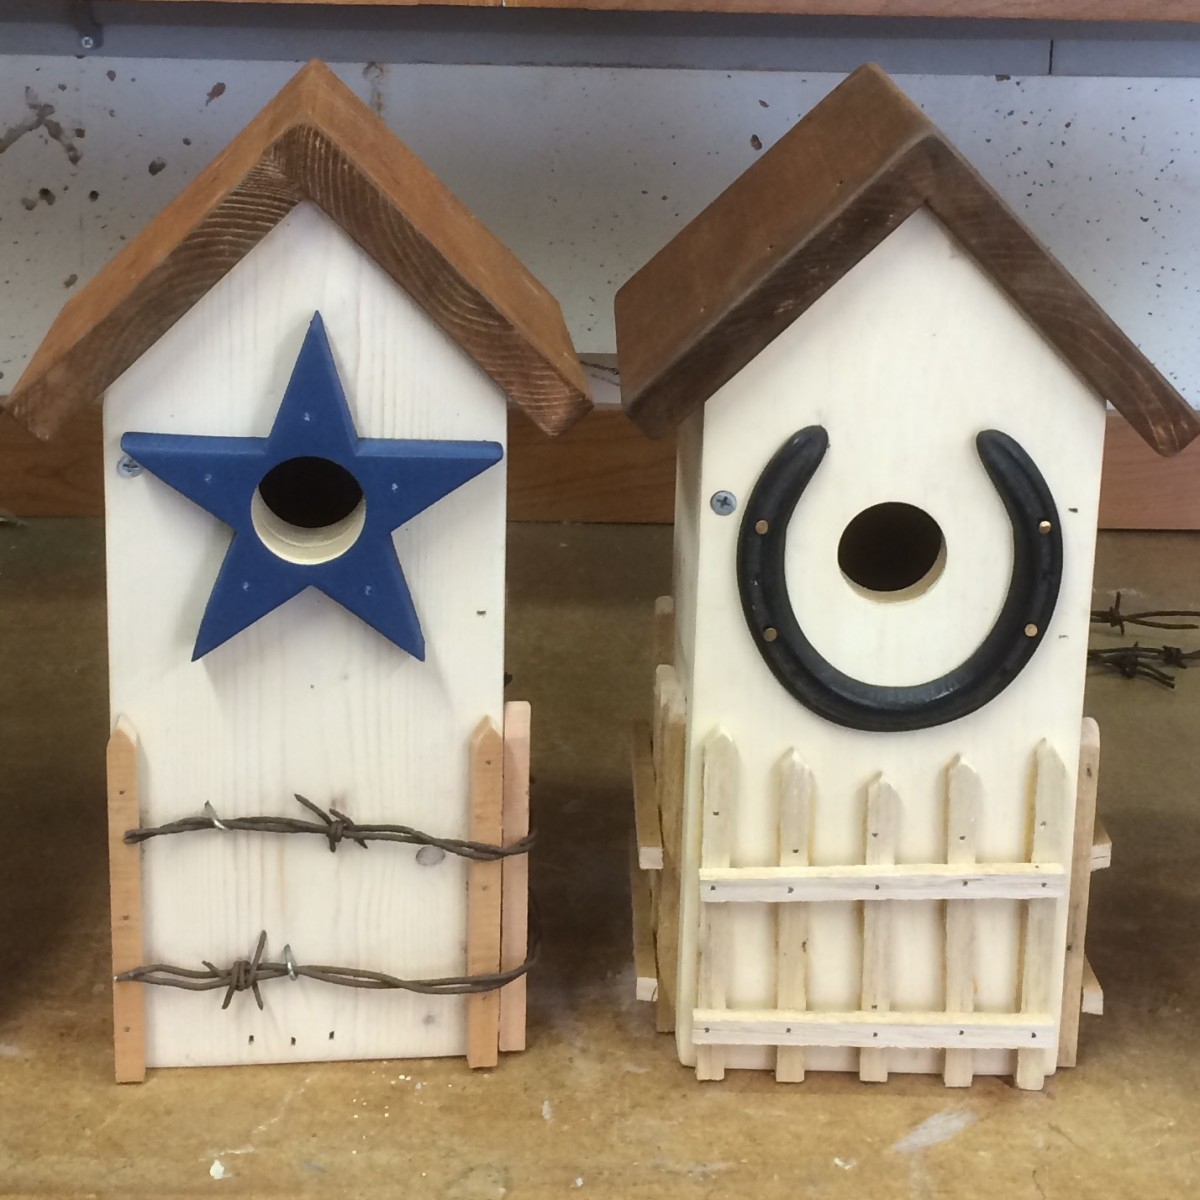 How to Build a Rustic Decorative Birdhouse